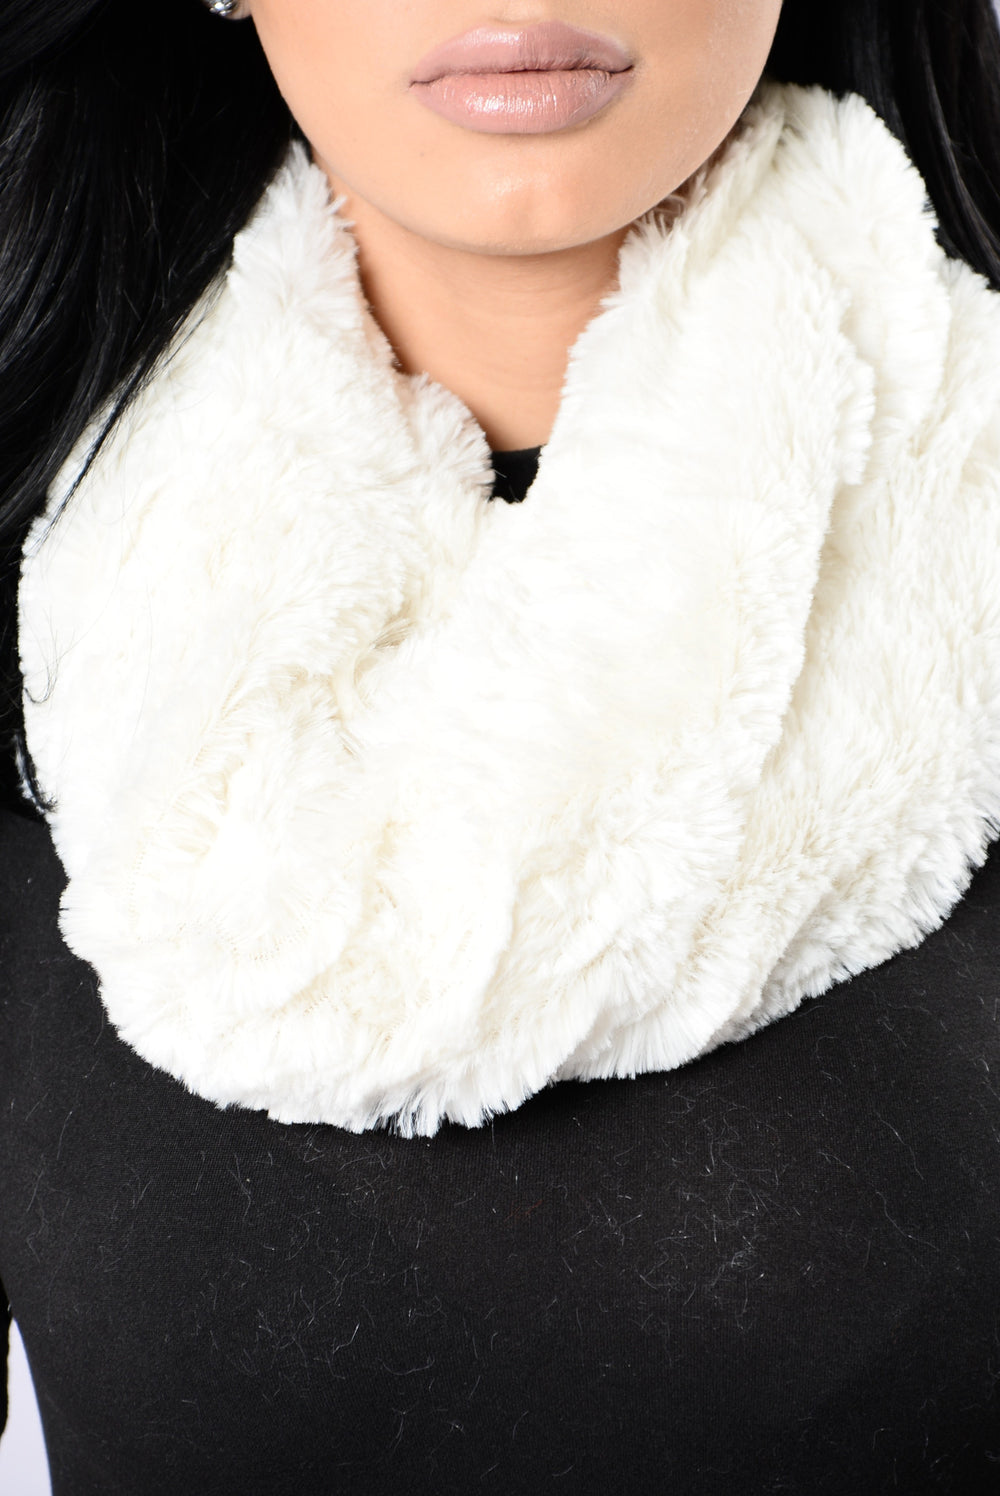 Soft Heart Mini Infinity Scarf - White